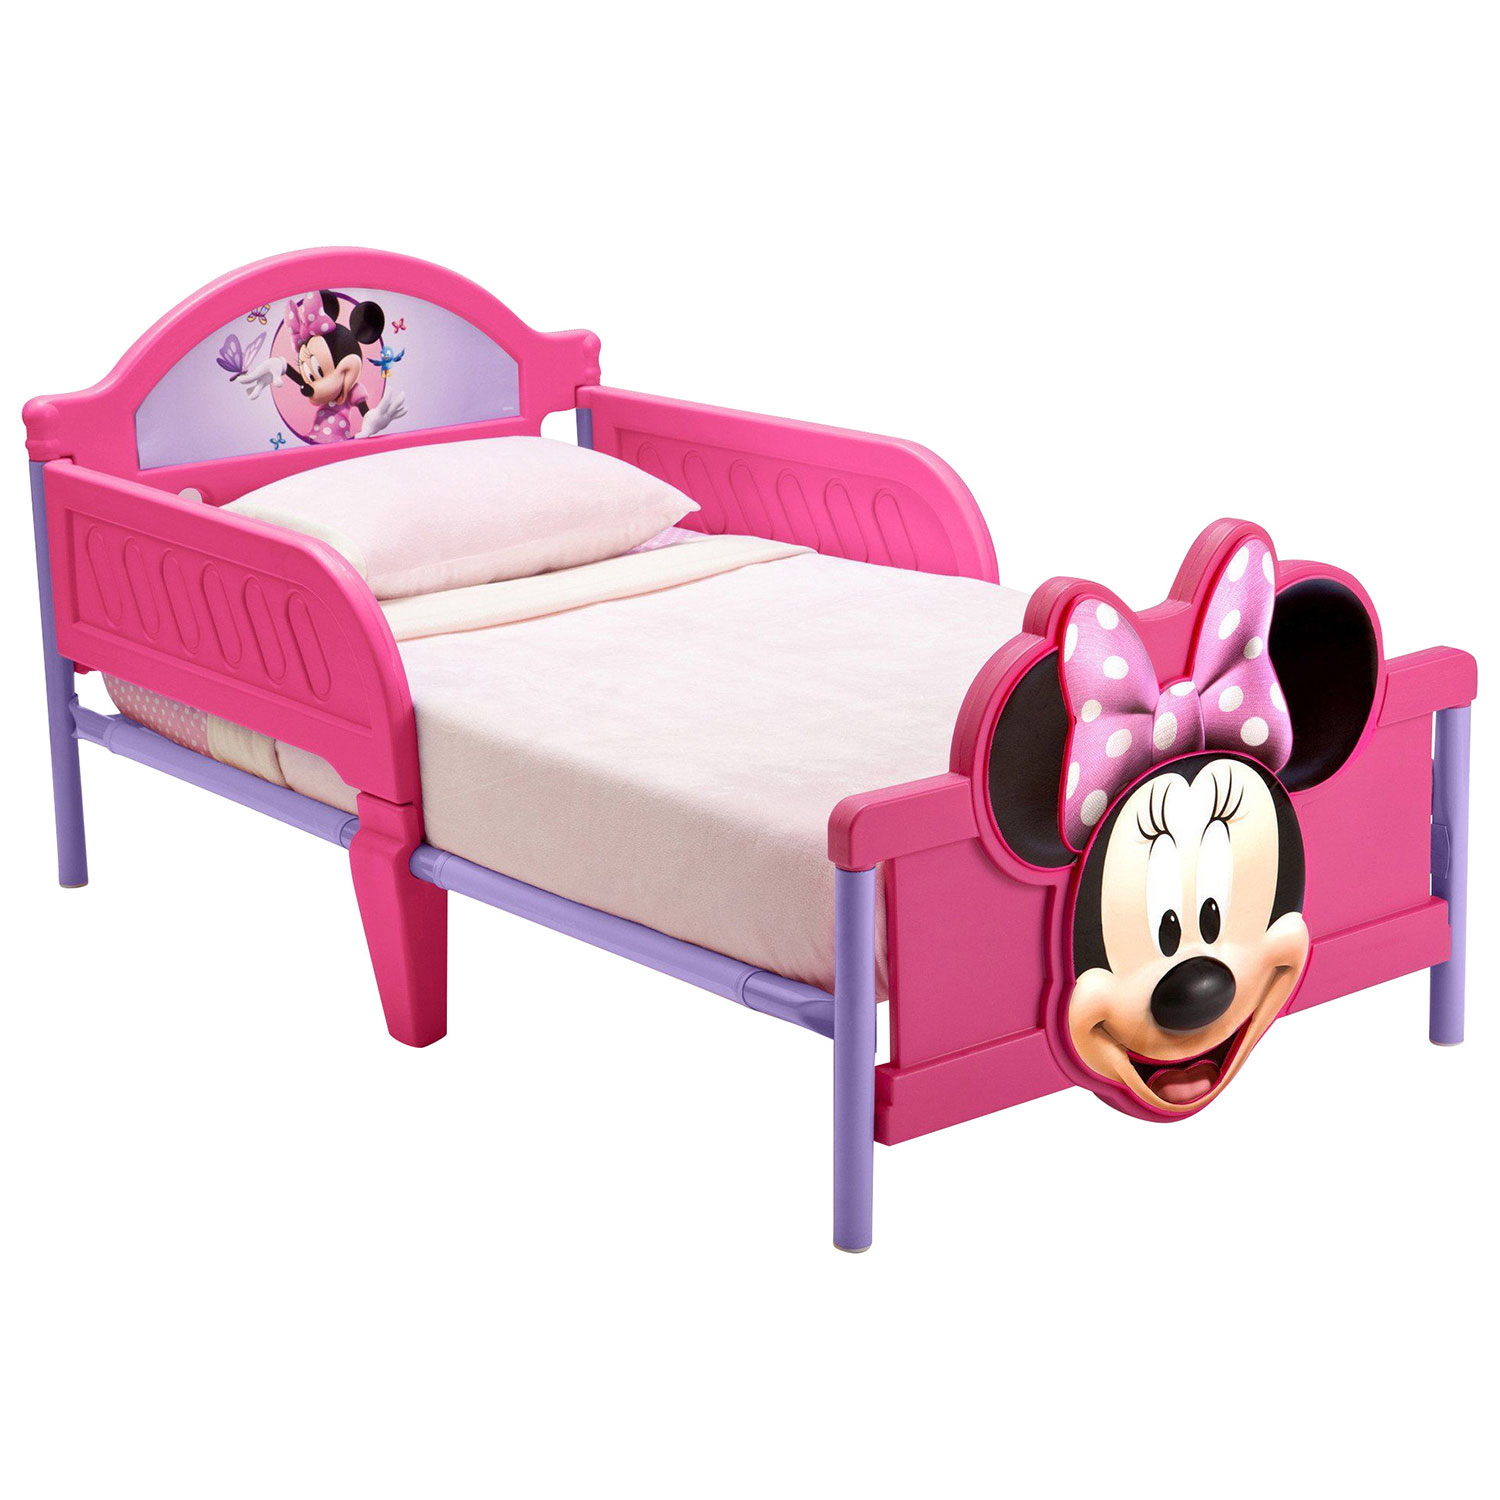 beds kids toddler itm character ebay feature bed disney and new